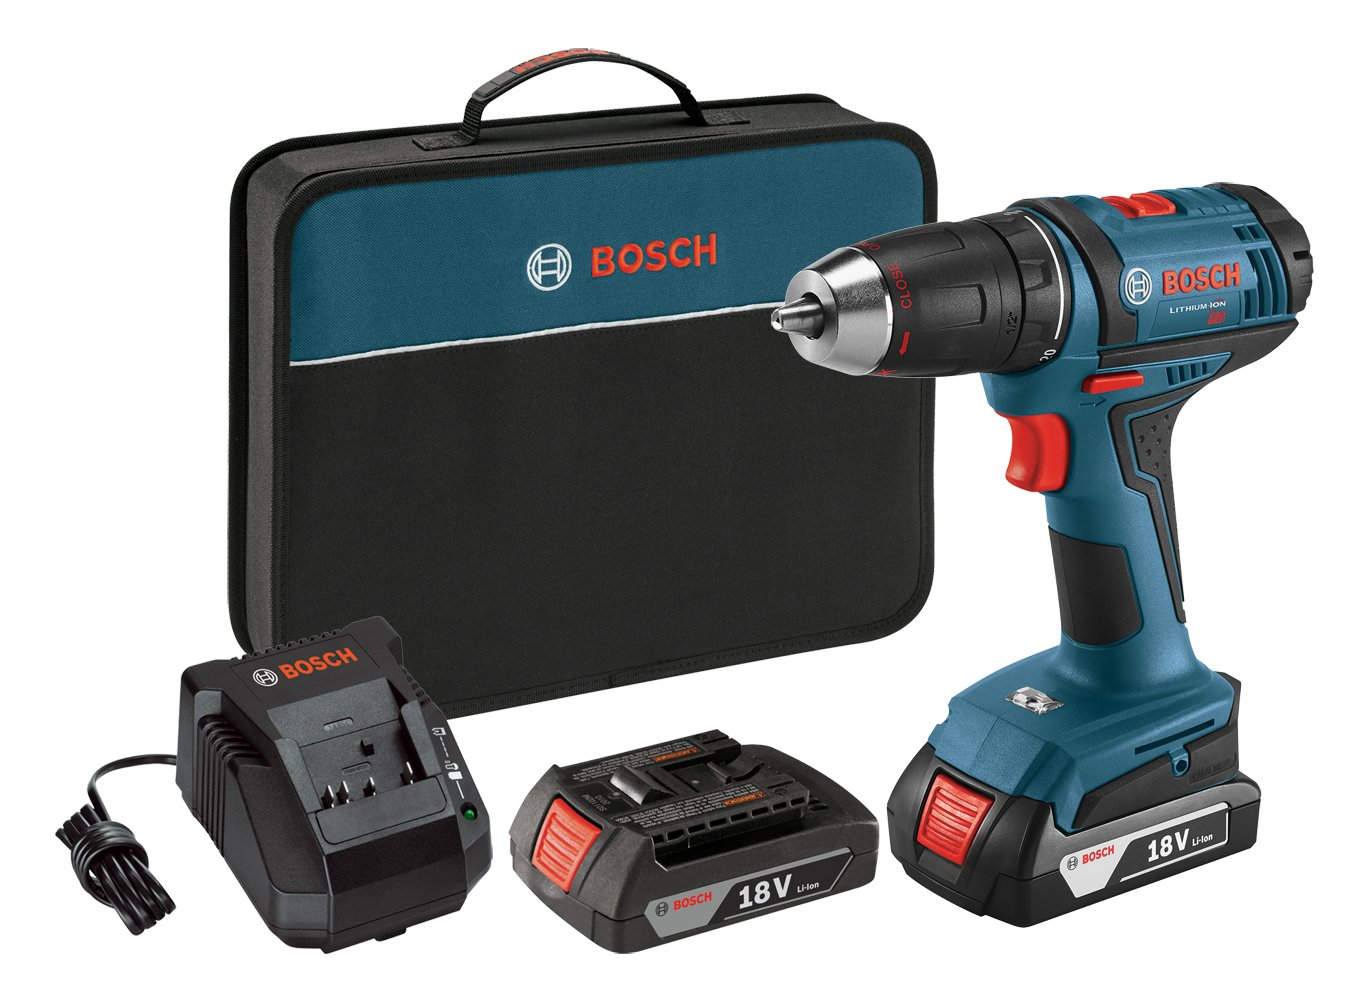 Beste Boormachine Top Best 18v Cordless Drills 18 Volt Cordless Drill Reviews